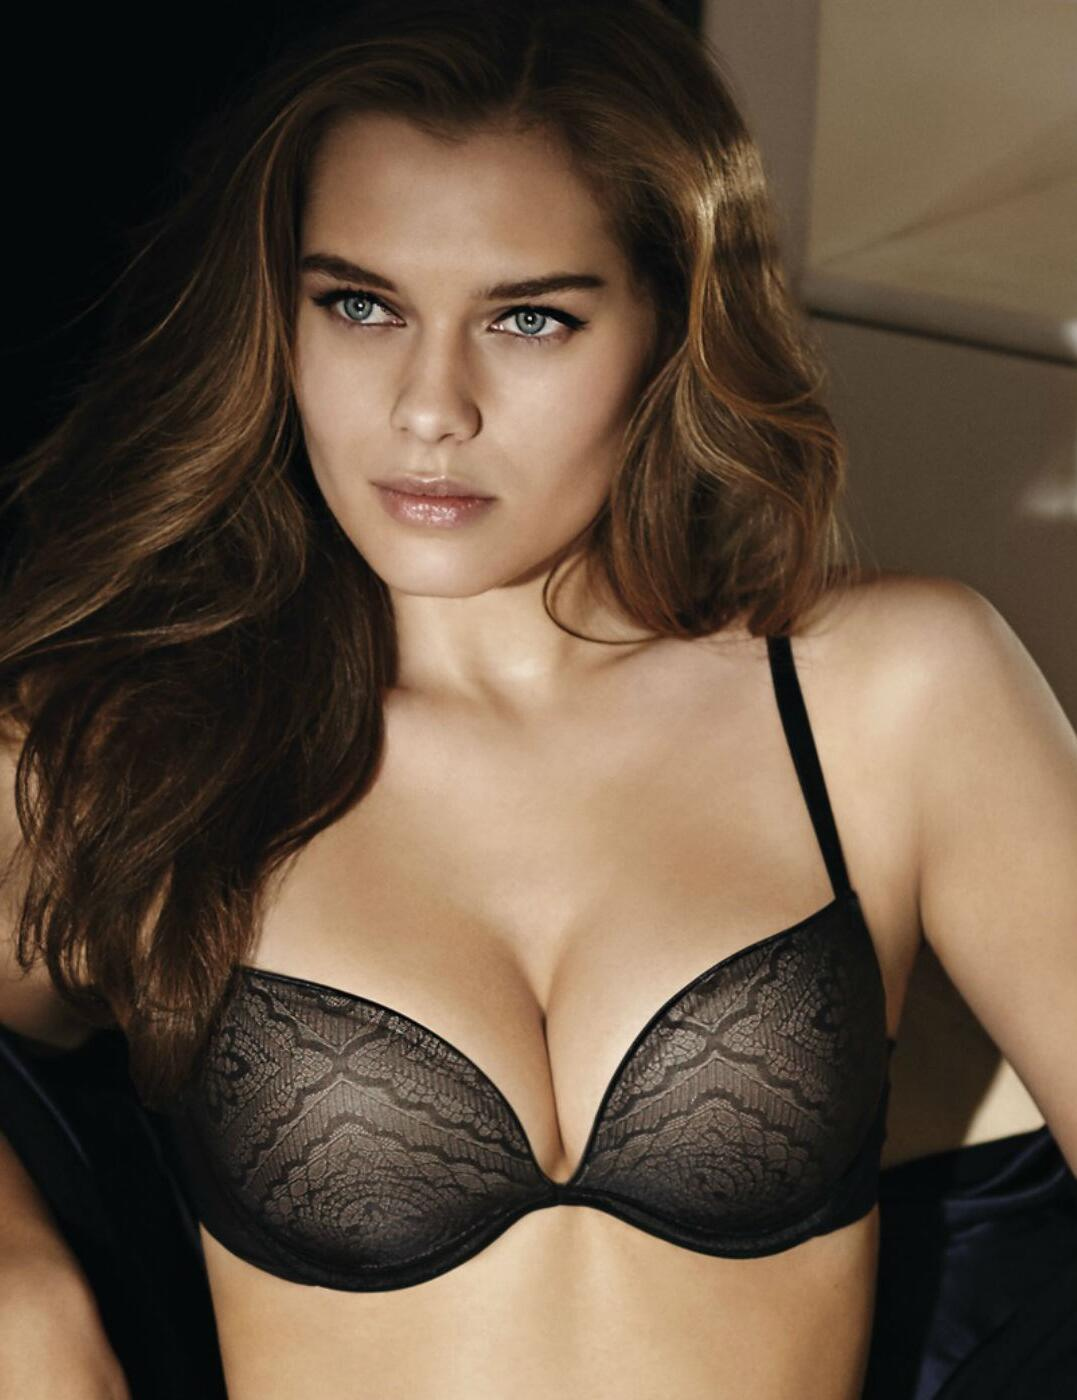 W032E Wonderbra Ultimate Silhouette Lace Bra  - W032E Black